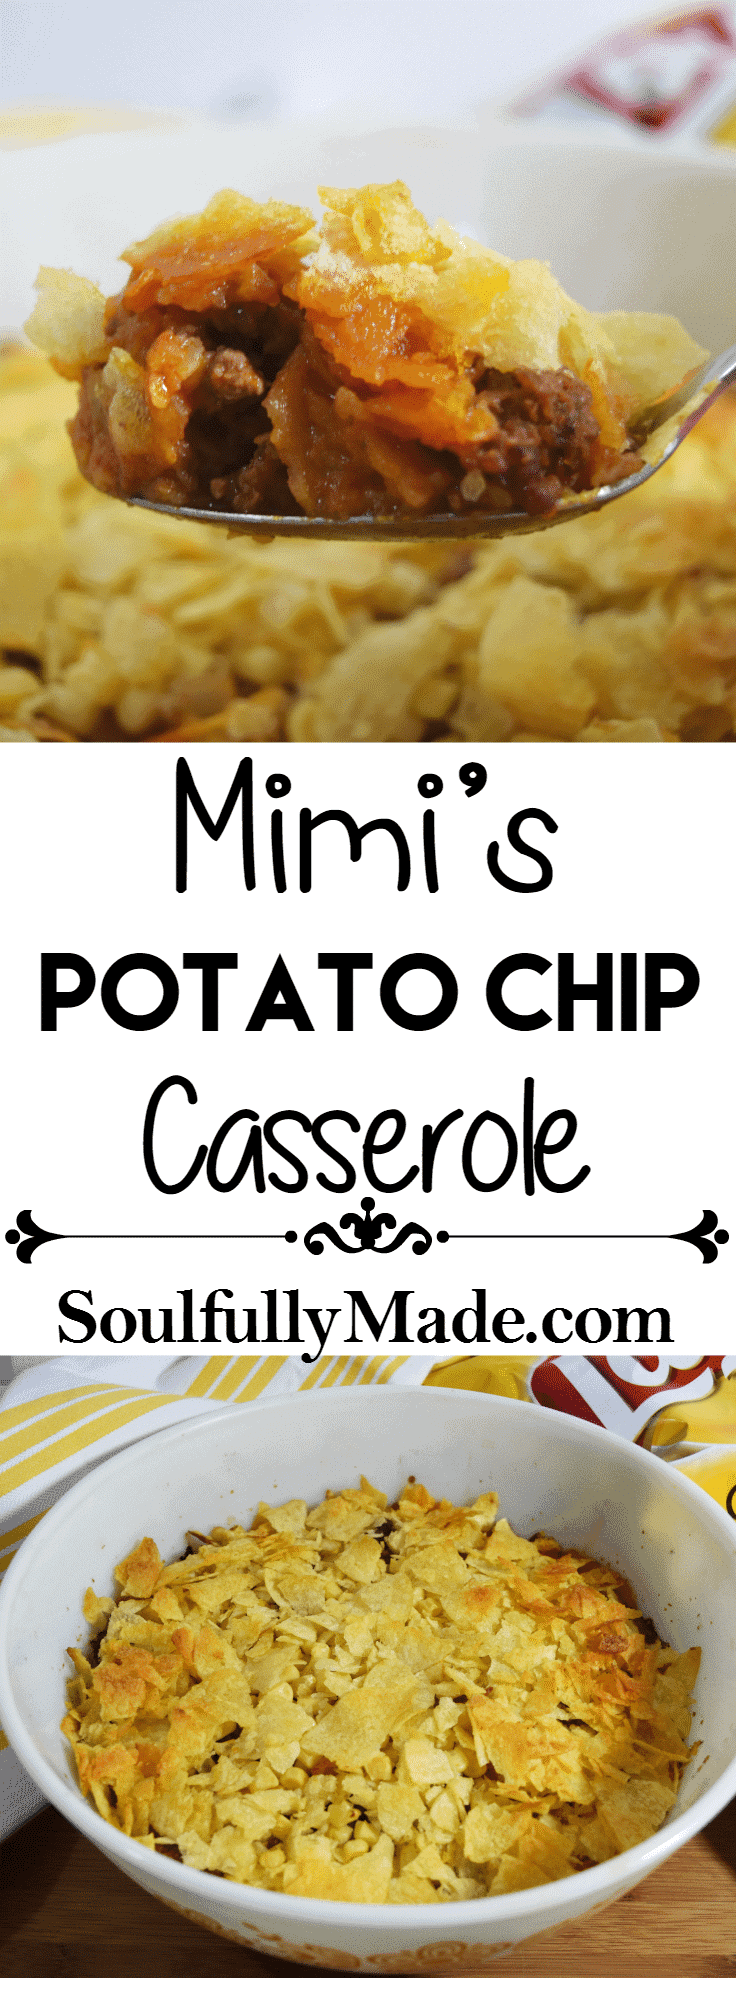 Mimi's Potato Chip Casserole Pin